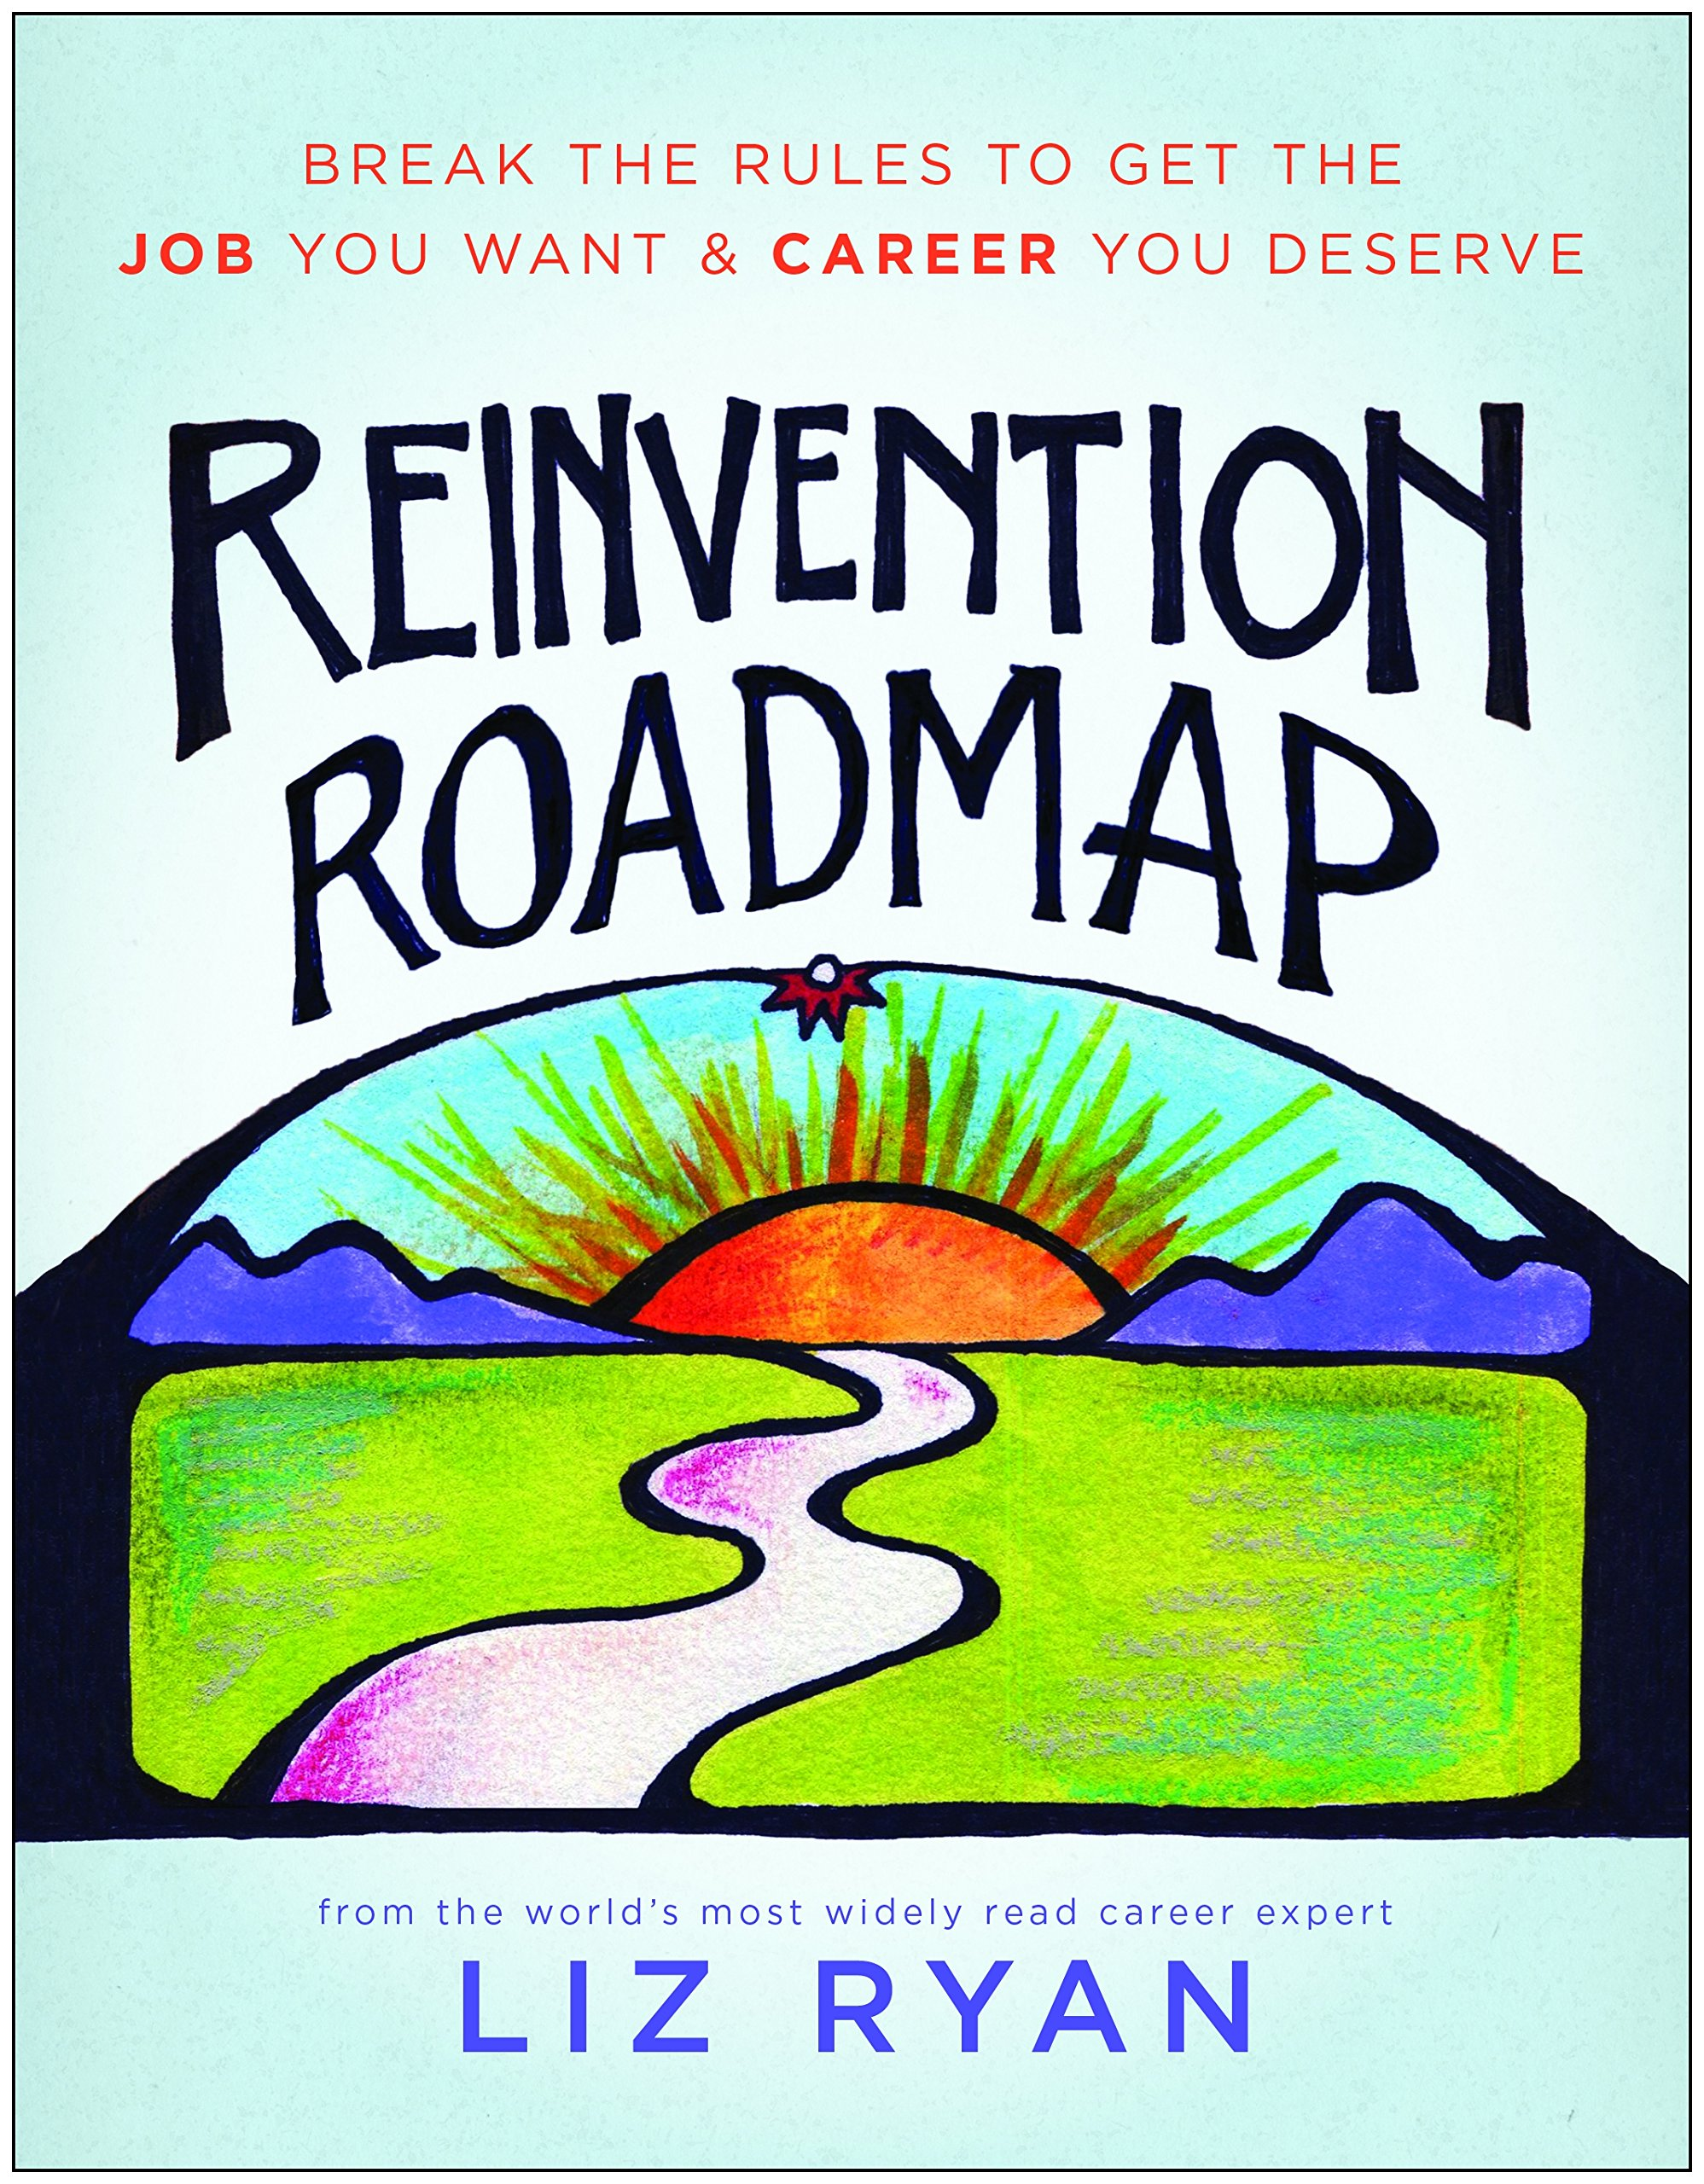 Reinvention Roadmap: Break the Rules to Get the Job You Want and Career You Deserve pdf